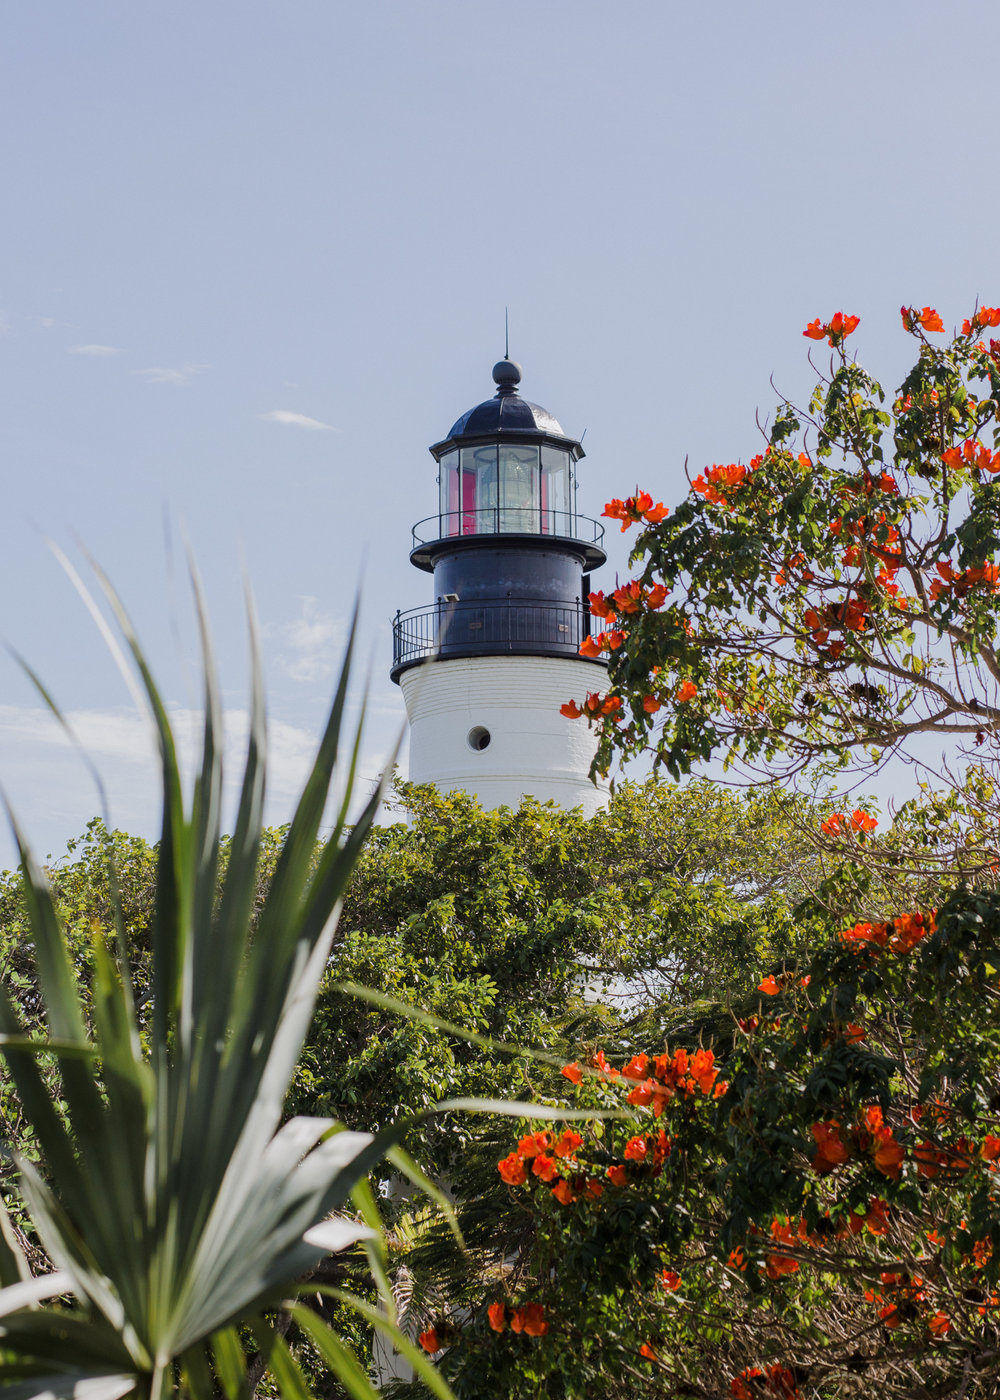 key west lighthouse, lena perkins wedding photographer, visit florida, duval street, things to see.jpg